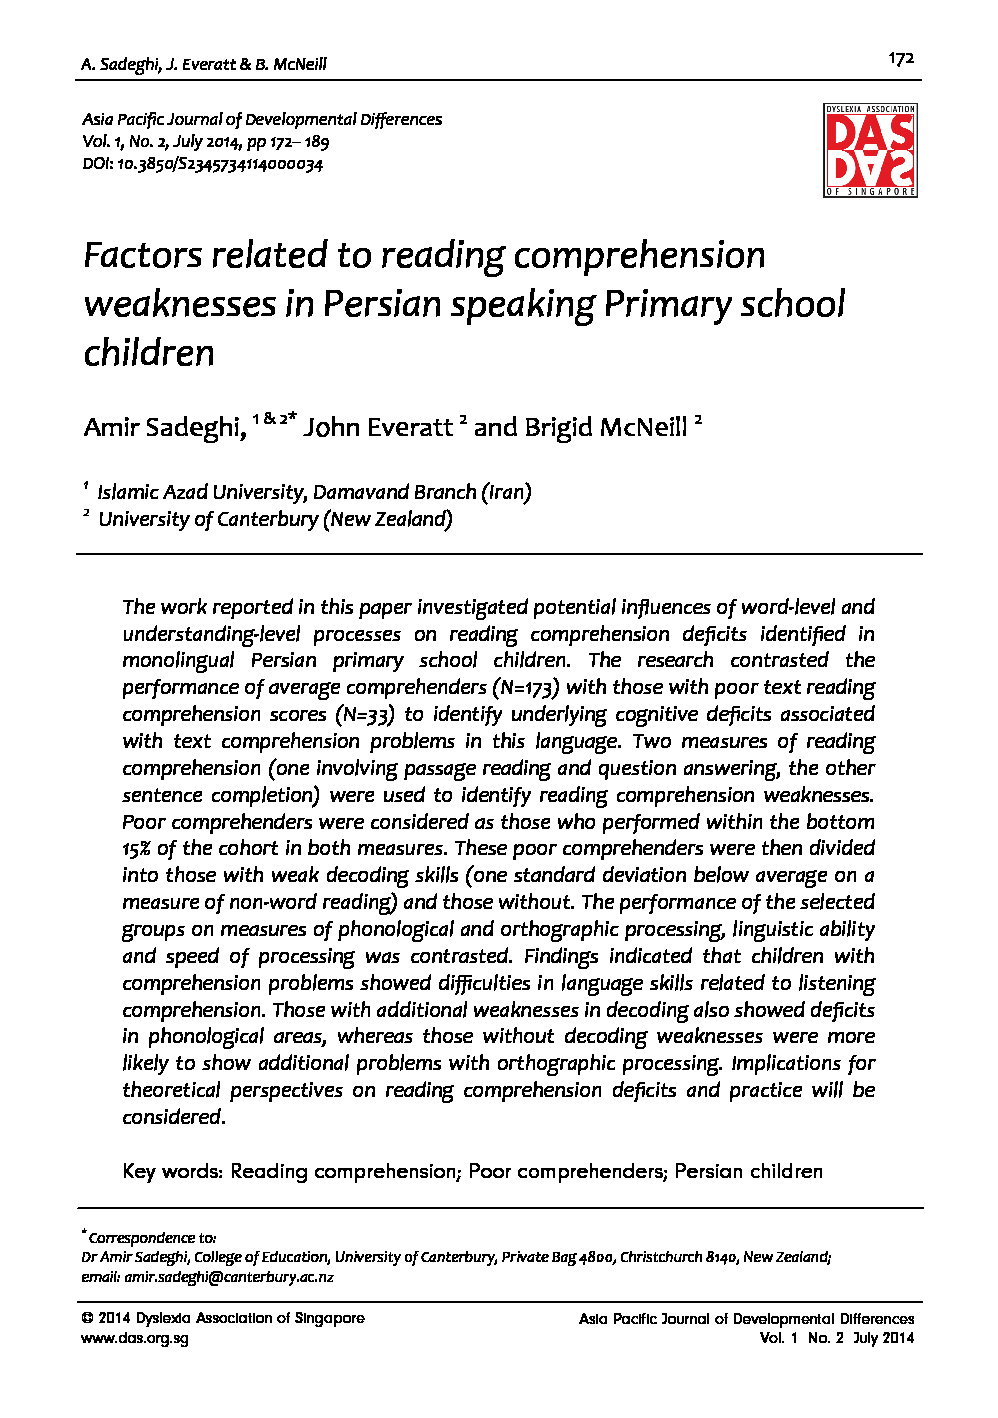 - 4. Factors Related To Reading Comprehension Weaknesses In Persian